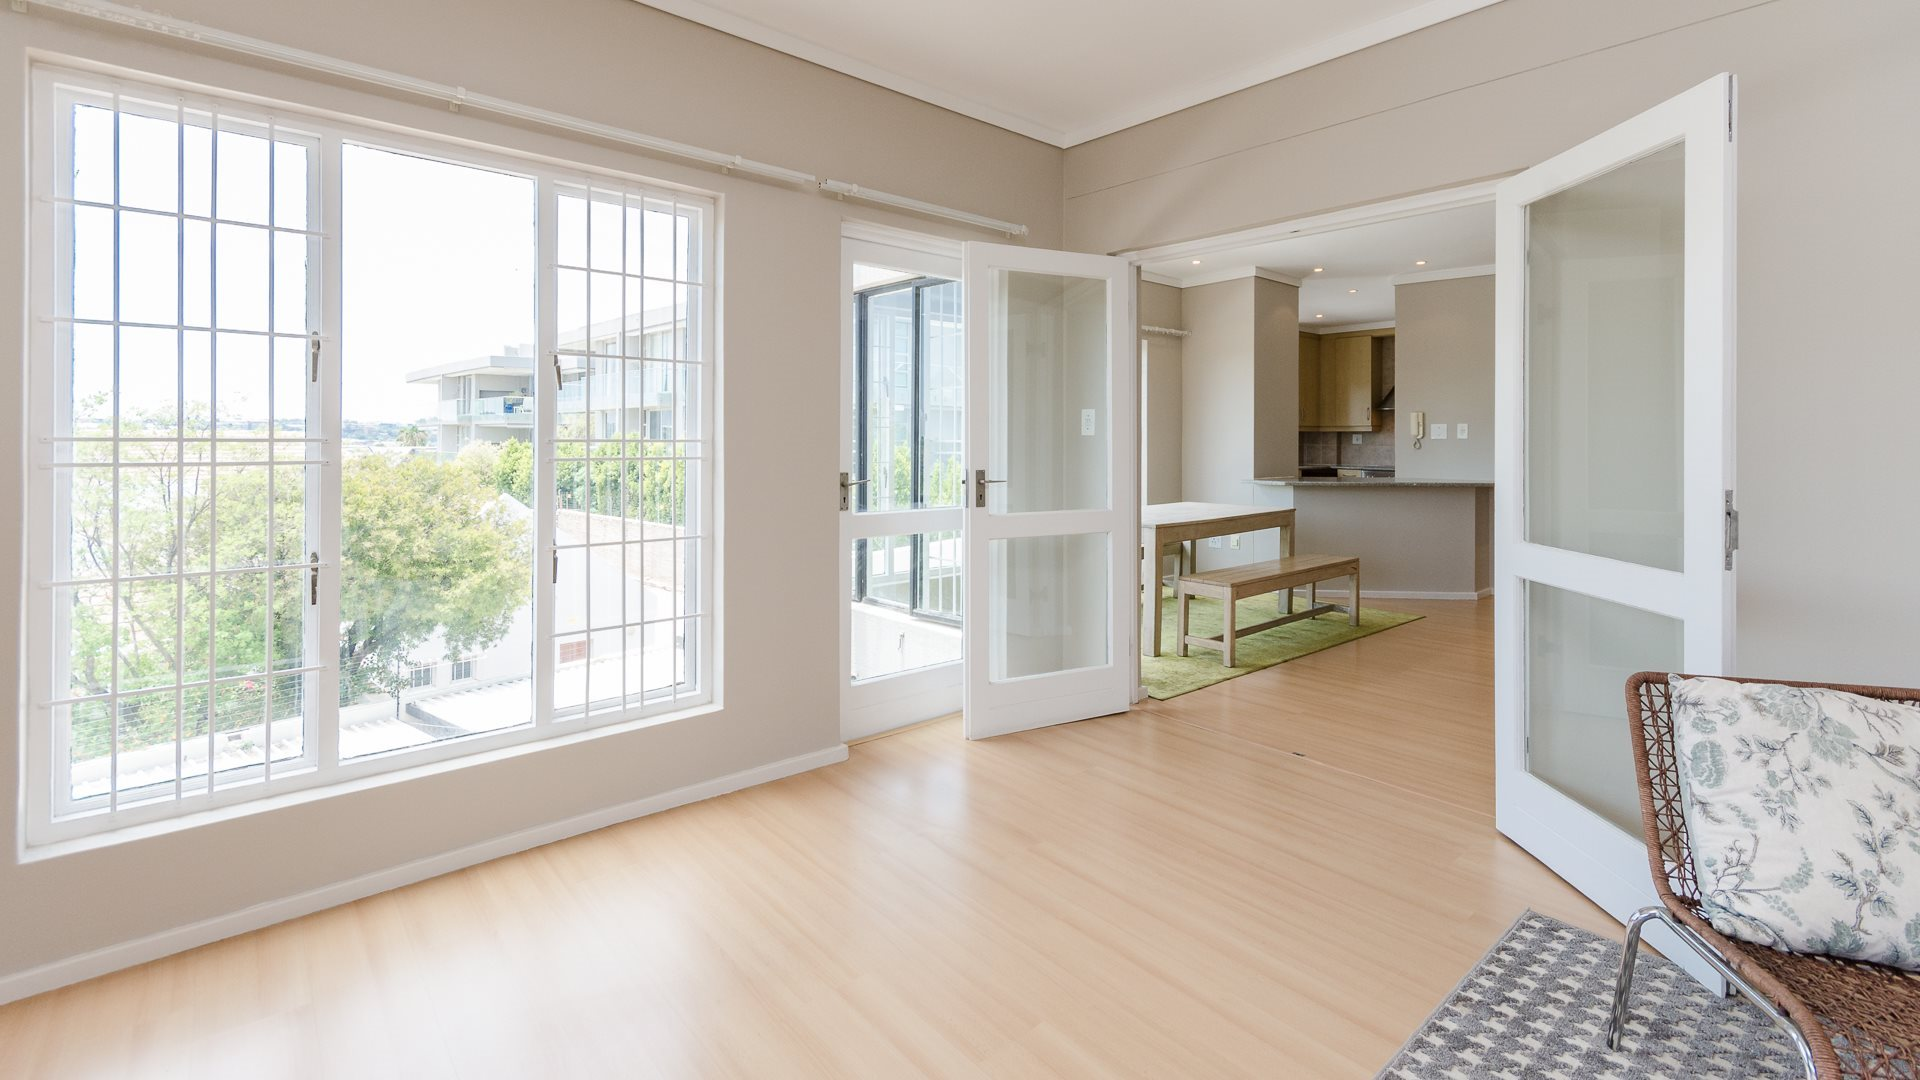 Morningside property for sale. Ref No: 13561793. Picture no 3